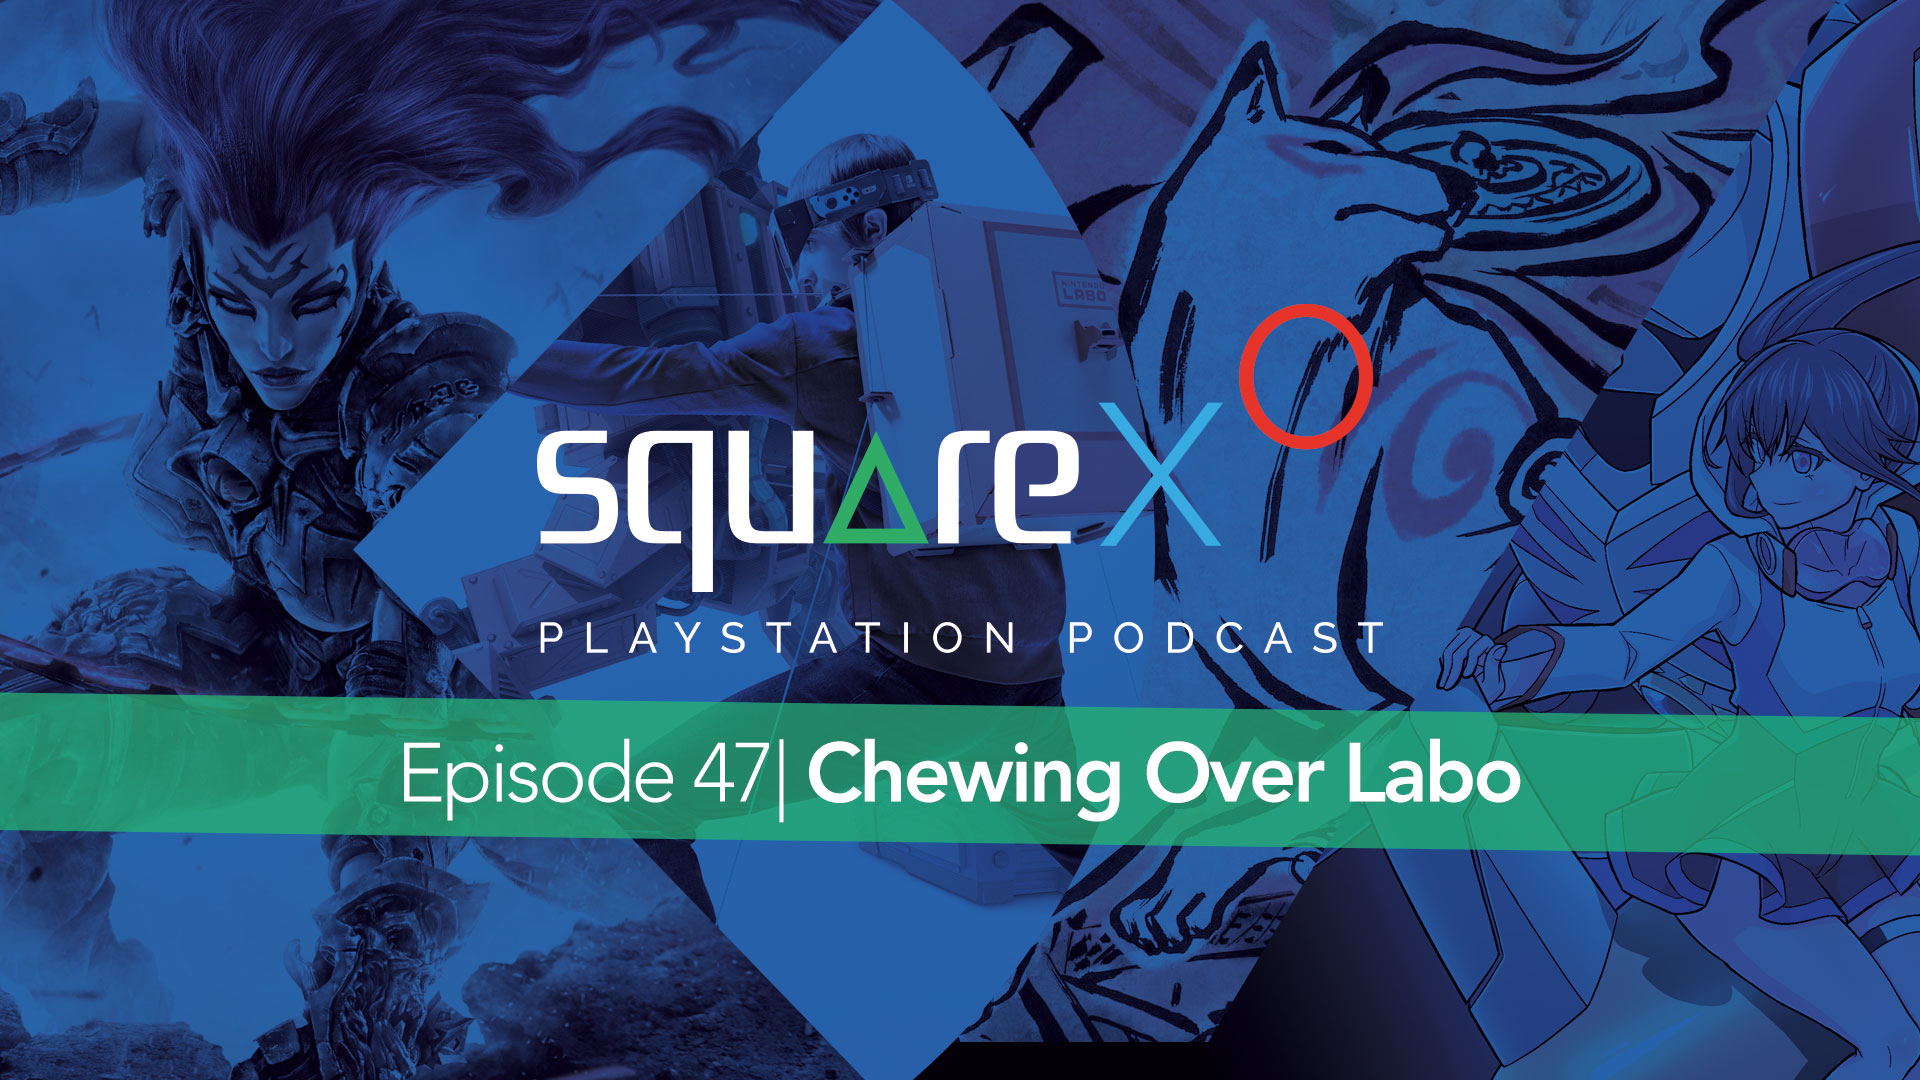 Episode 47 | Chewing Over Labo